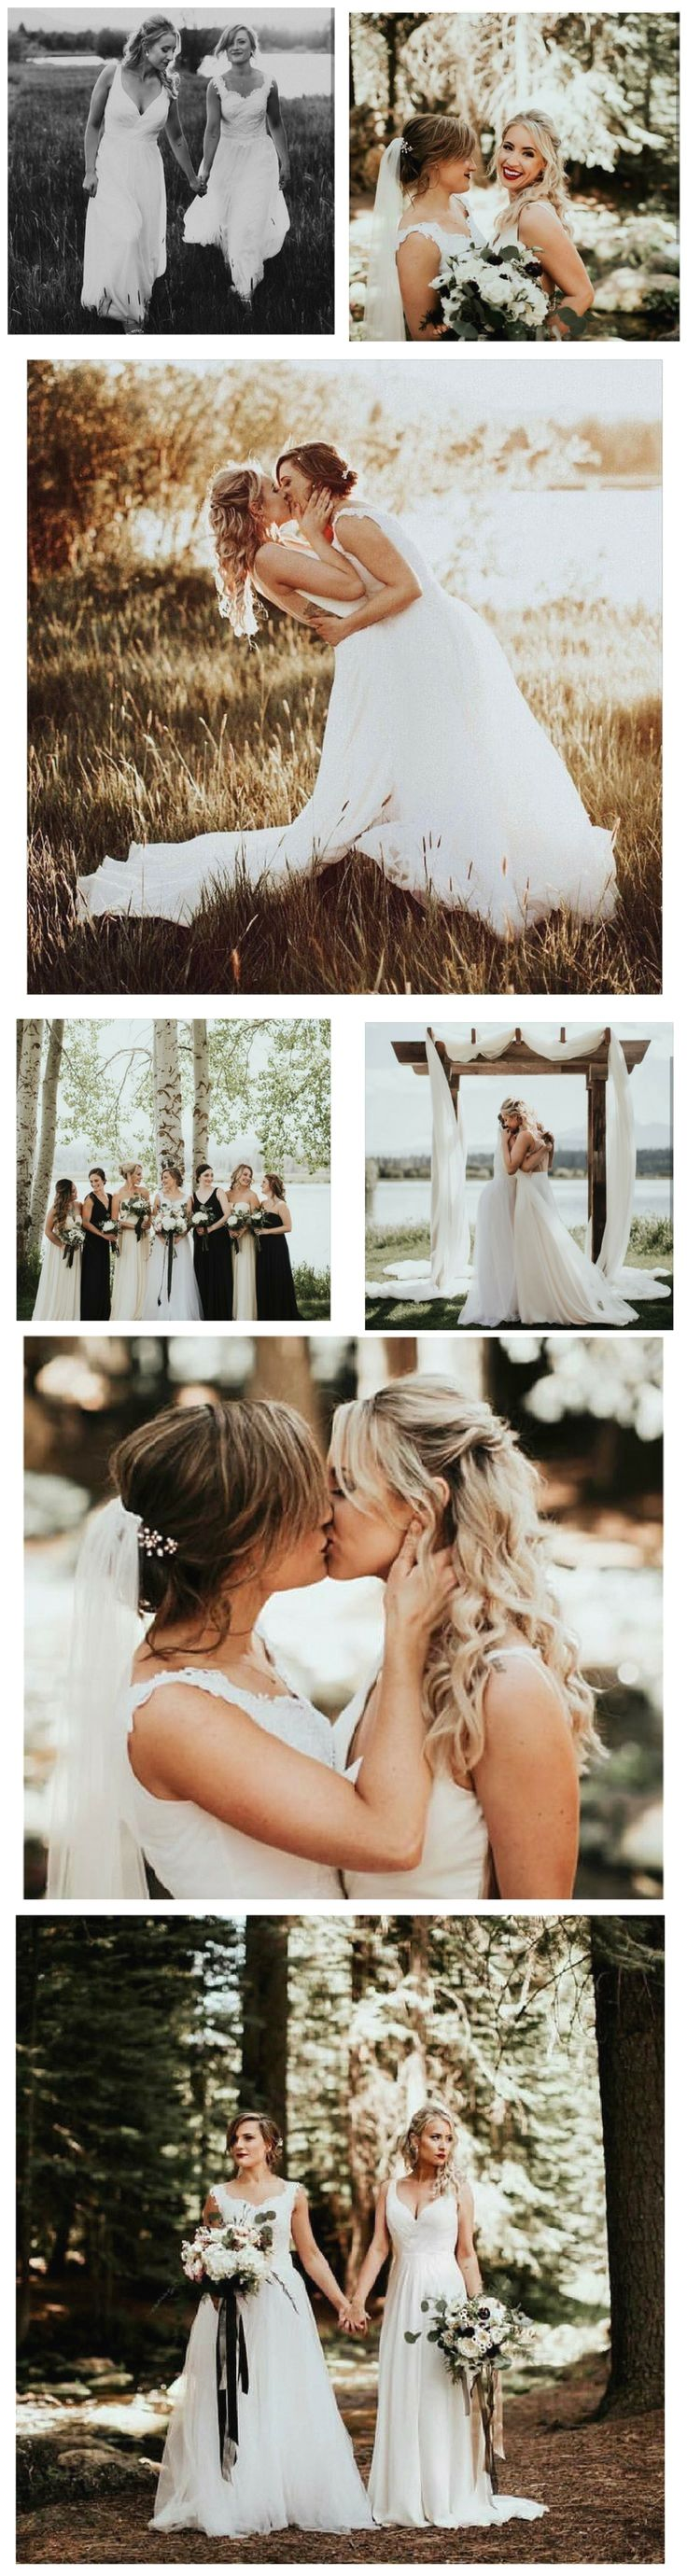 Two gorgeous brides Erin & Madison. A lesbian wedding to be inspired by. Photography by Victoria Carlson Photography Wedding Goals, Dream Wedding, Wedding Day, Wedding Ceremony, Wedding Menu, Trendy Wedding, Lesbian Love, Lesbian Couples, Muslim Couples